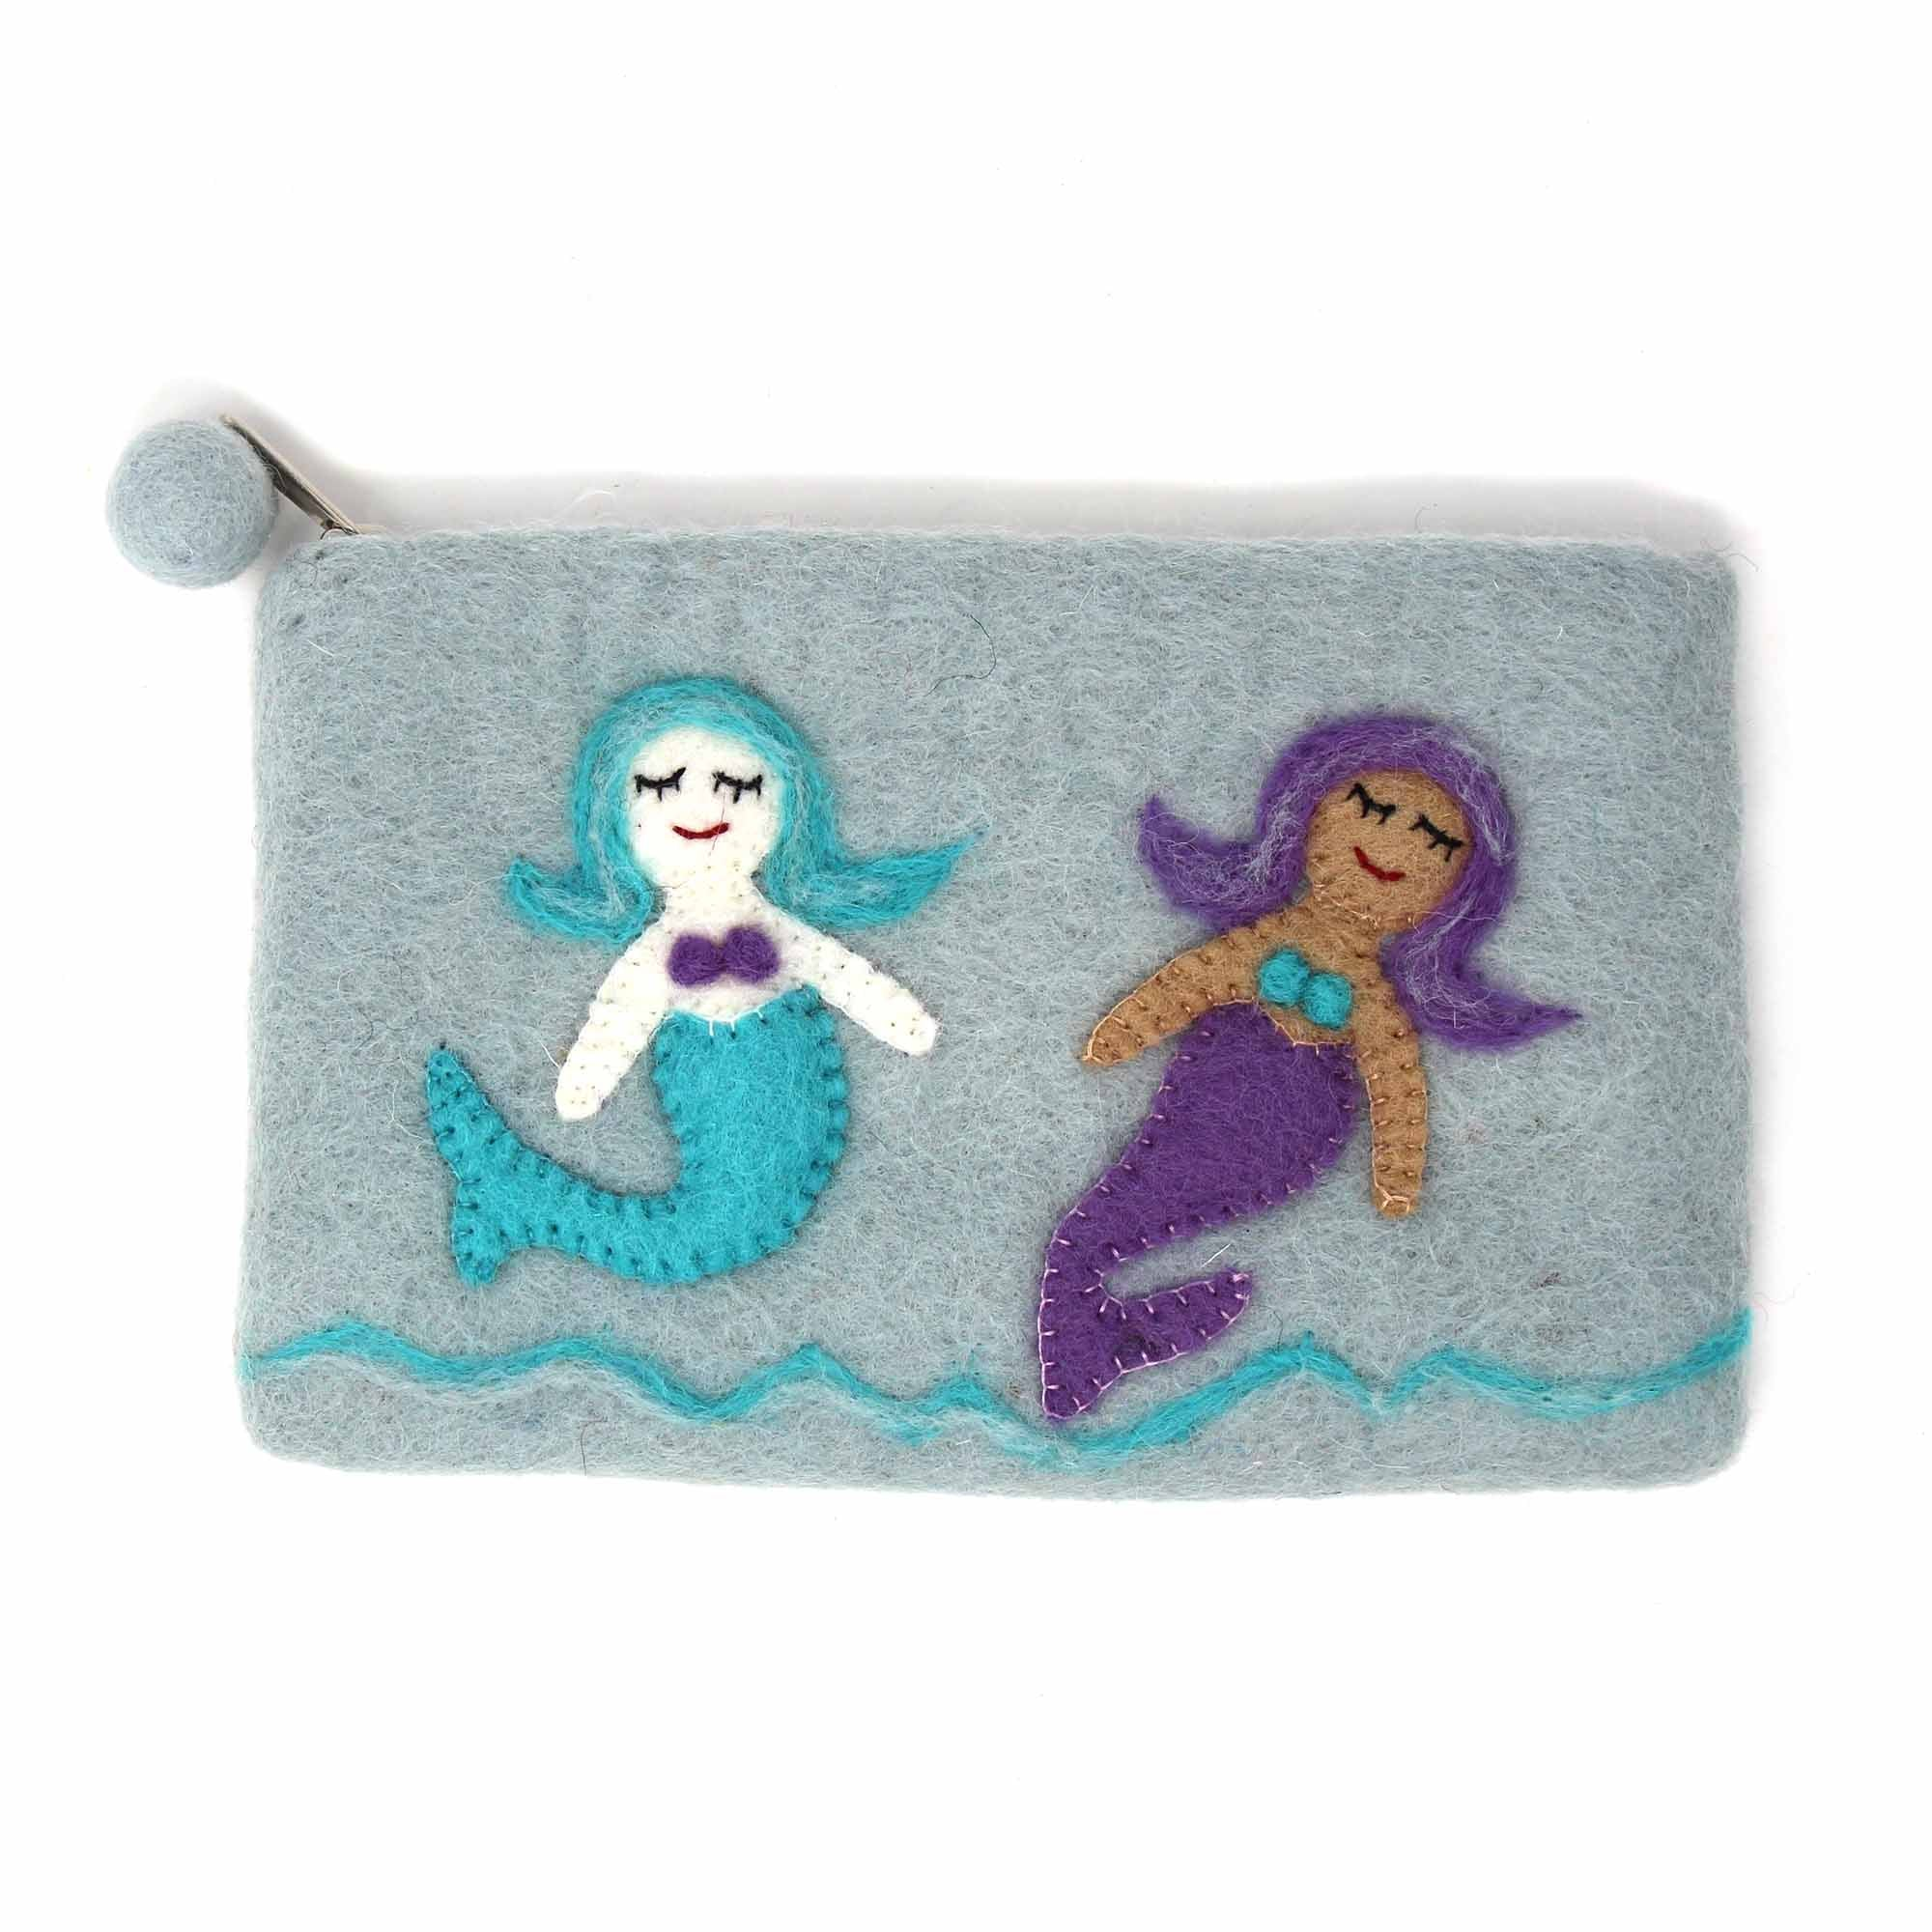 Mermaid Felt Zipper Pouch